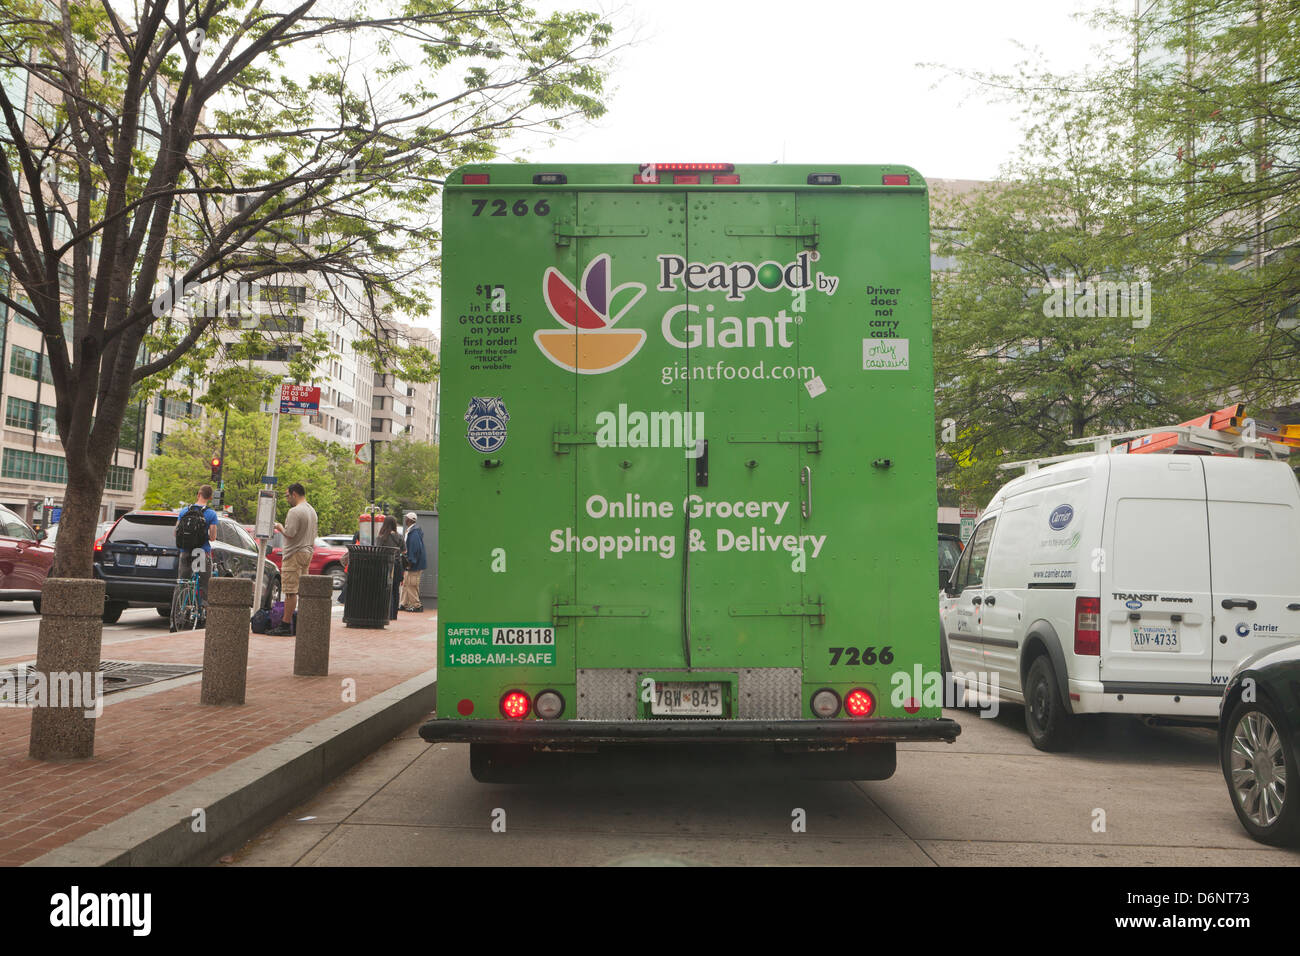 Peapod Giant Grocery Delivery Truck Stock Photo, Royalty Free ...